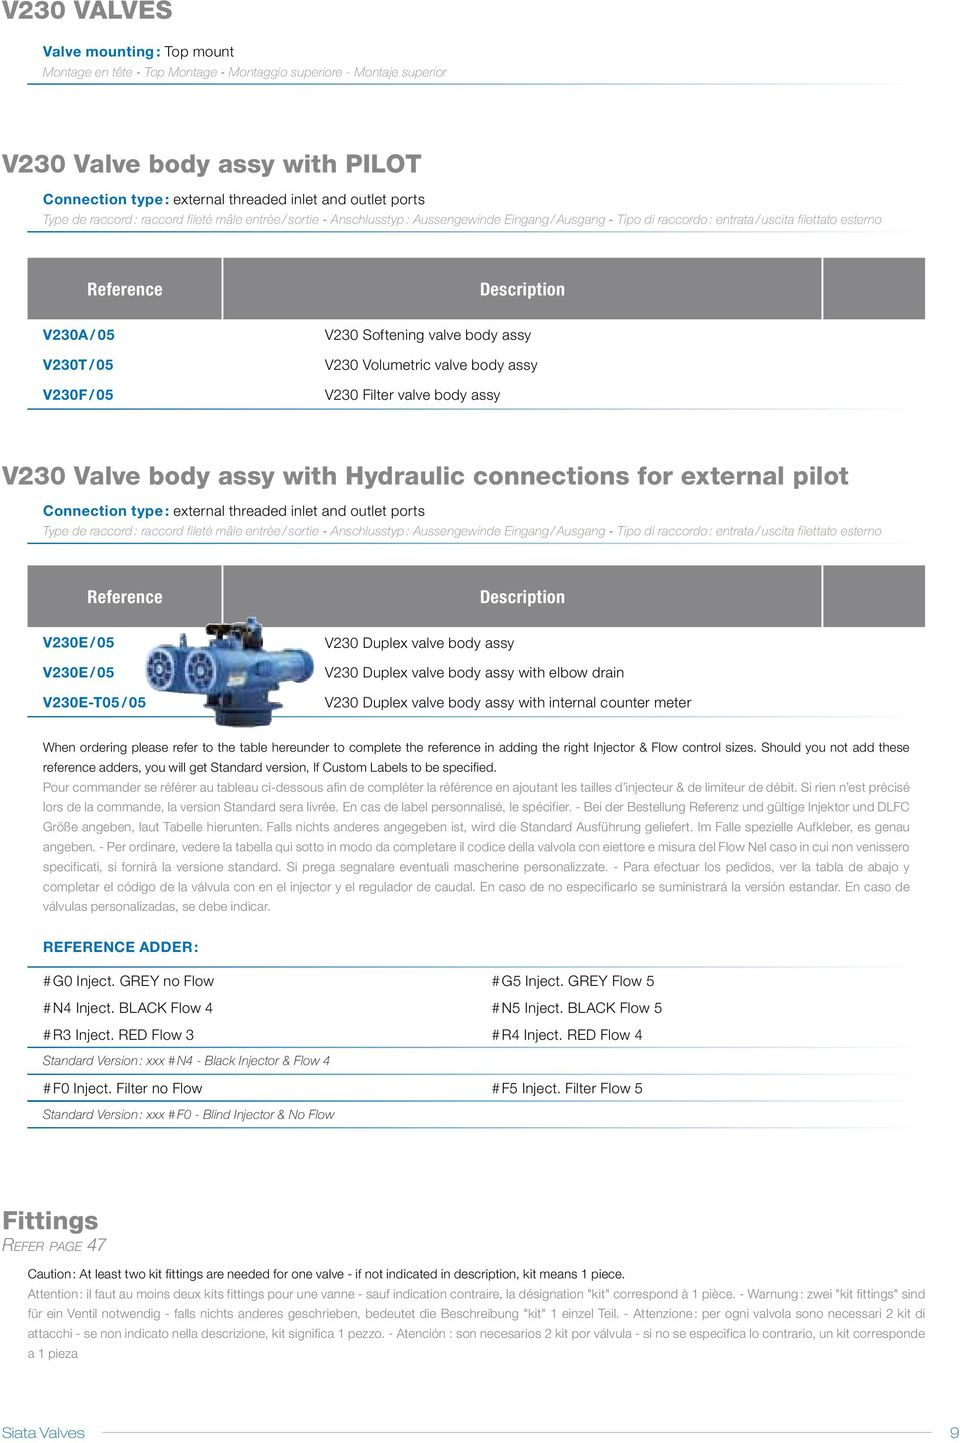 Filter valve body assy V230 Valve body assy with Hydraulic connections for external pilot external threaded inlet and outlet ports Type de raccord : raccord fileté mâle entrée / sortie - Anschlusstyp